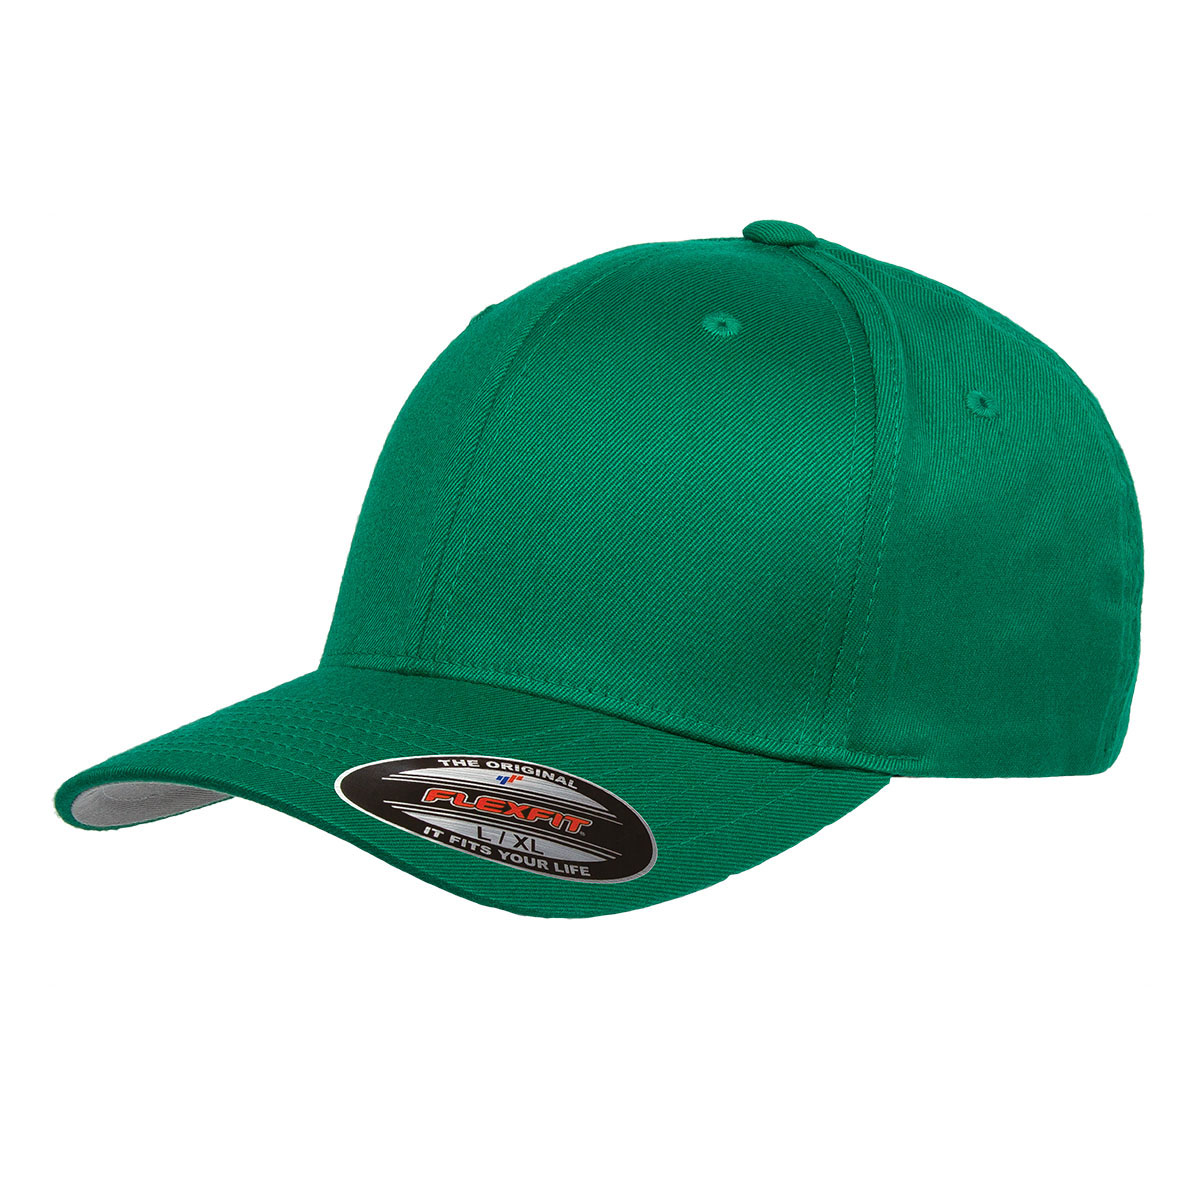 Pepper Green Flexfit Embroidered – Whats A Name Embroidery 602cc189de10